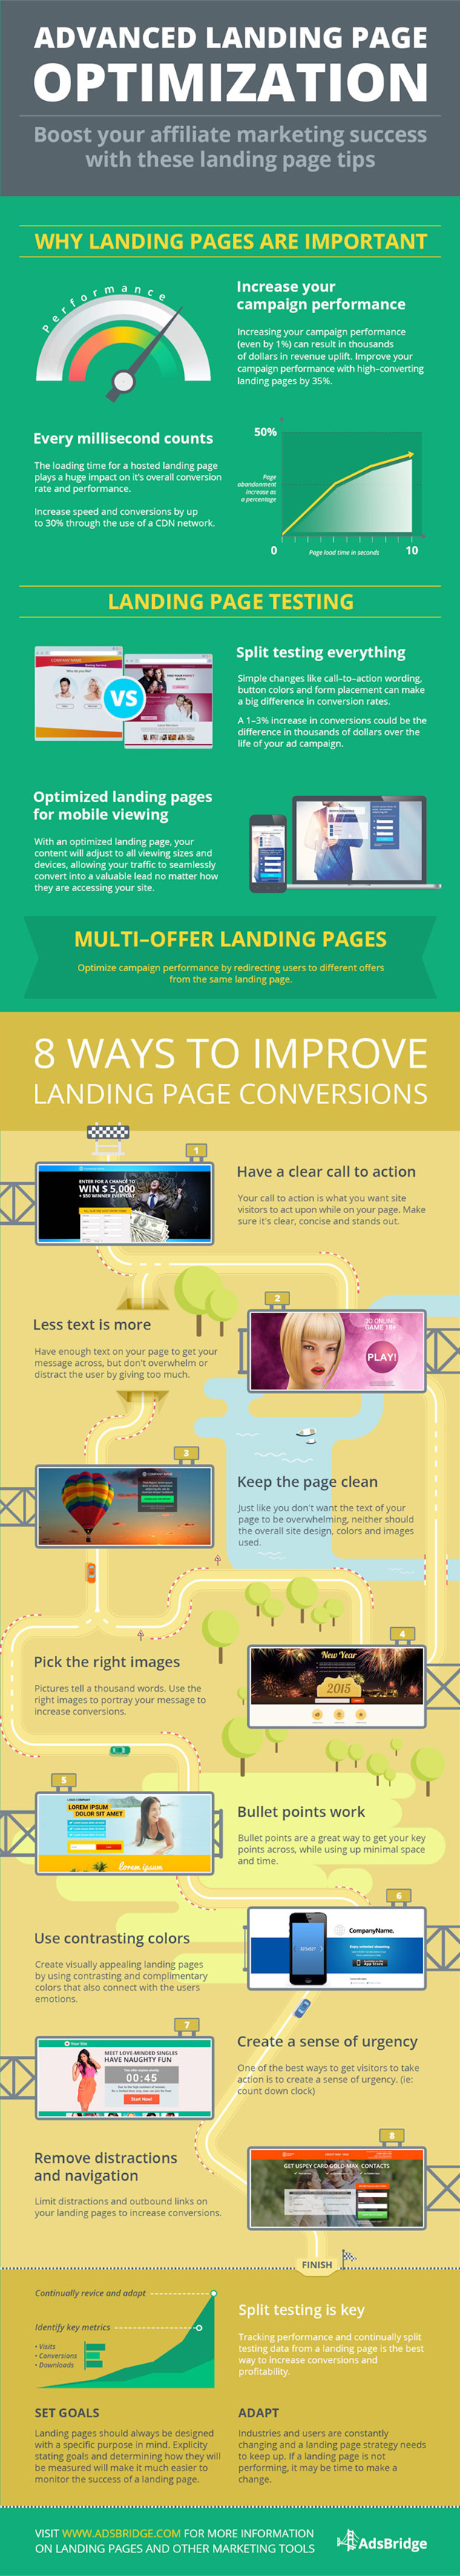 Infographie optimisation landing page